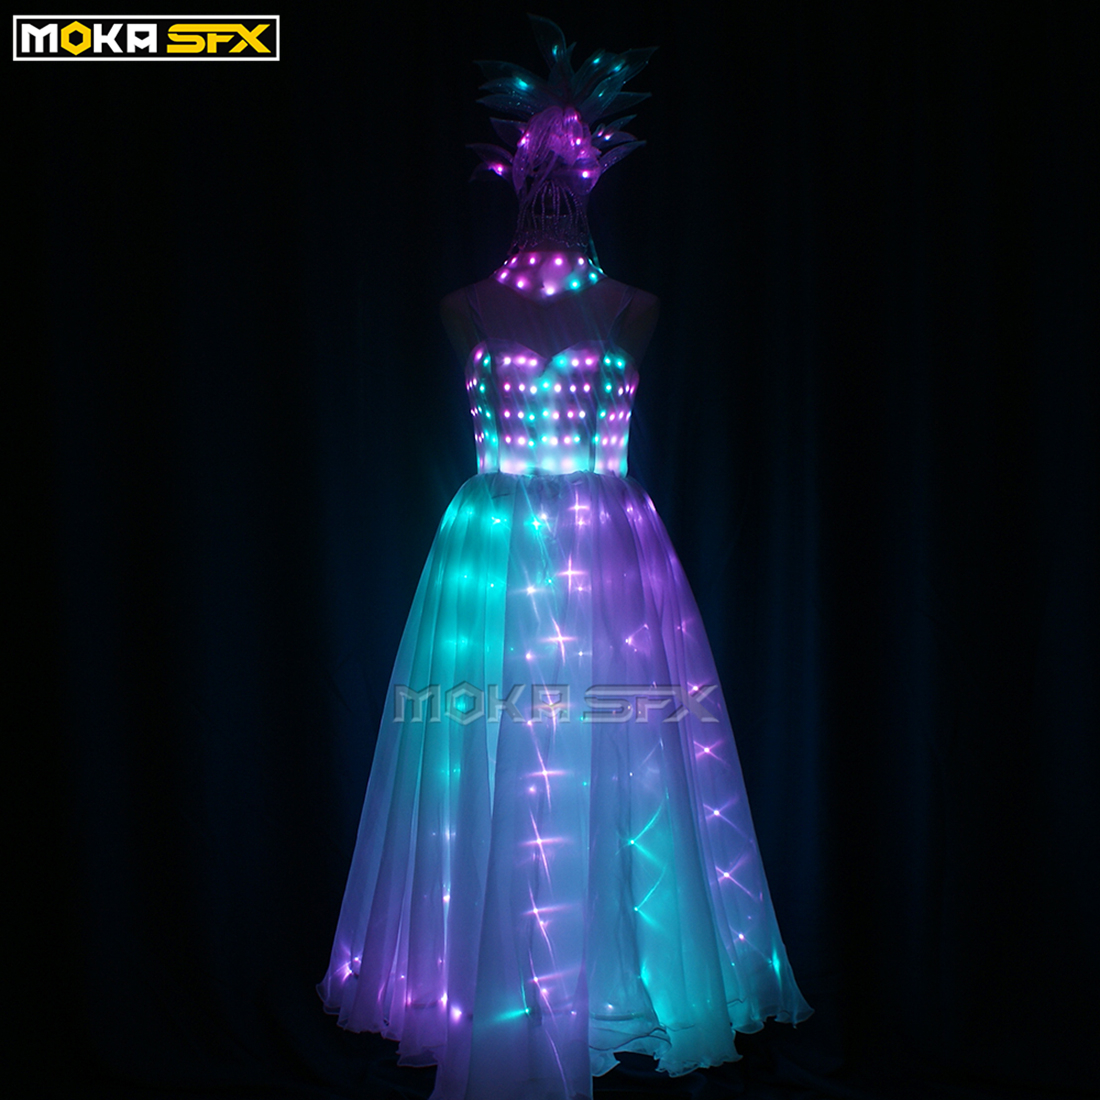 Women LED Dress Robot Costume LED Clothing Luminous Light Stage Dance Costumes Halloween Performance Party Decorations